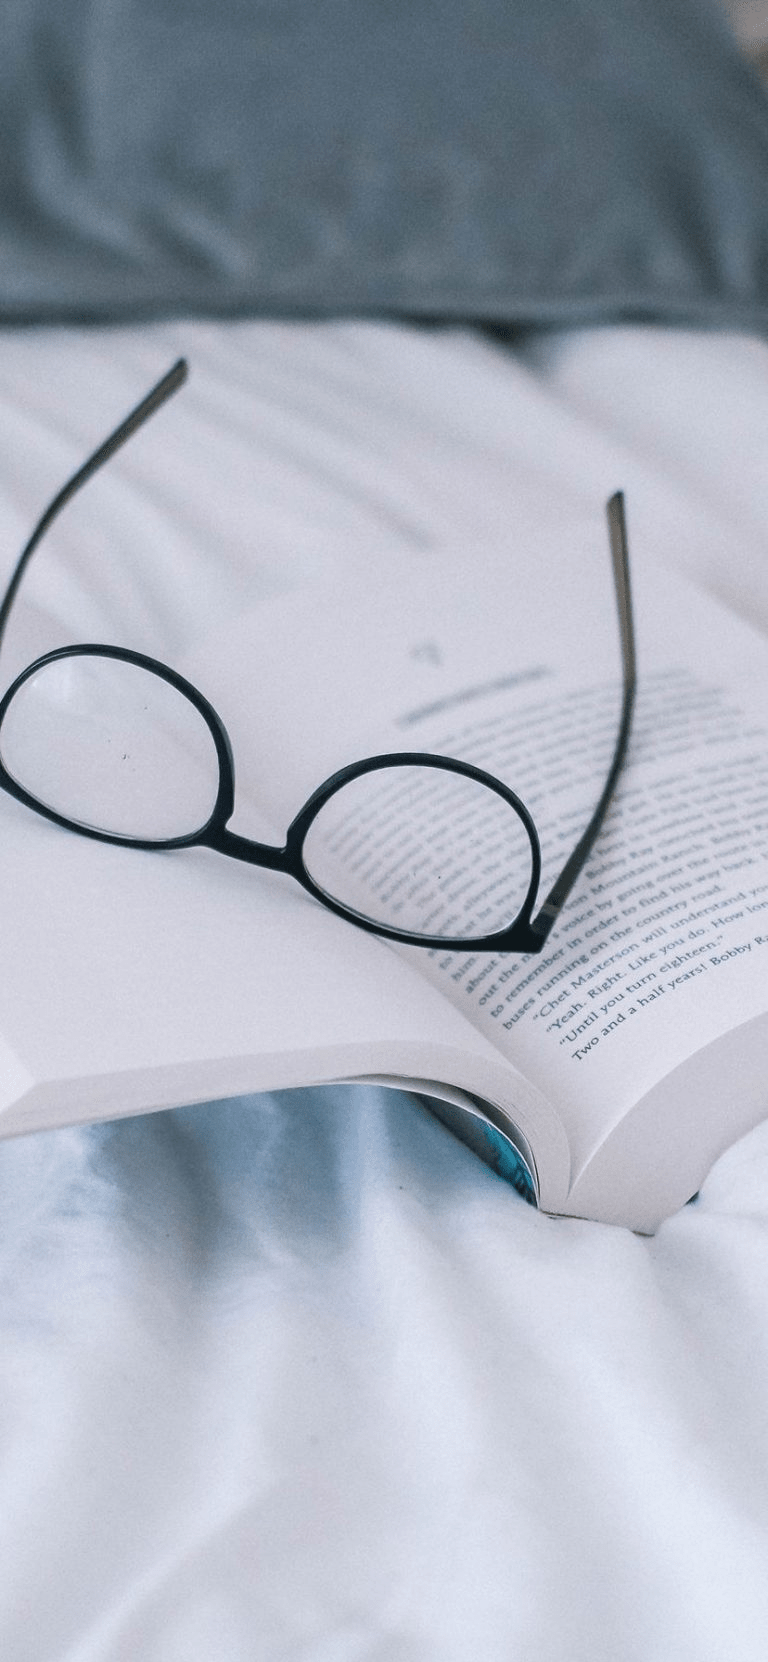 Book And Specks, peaceful wallpaper